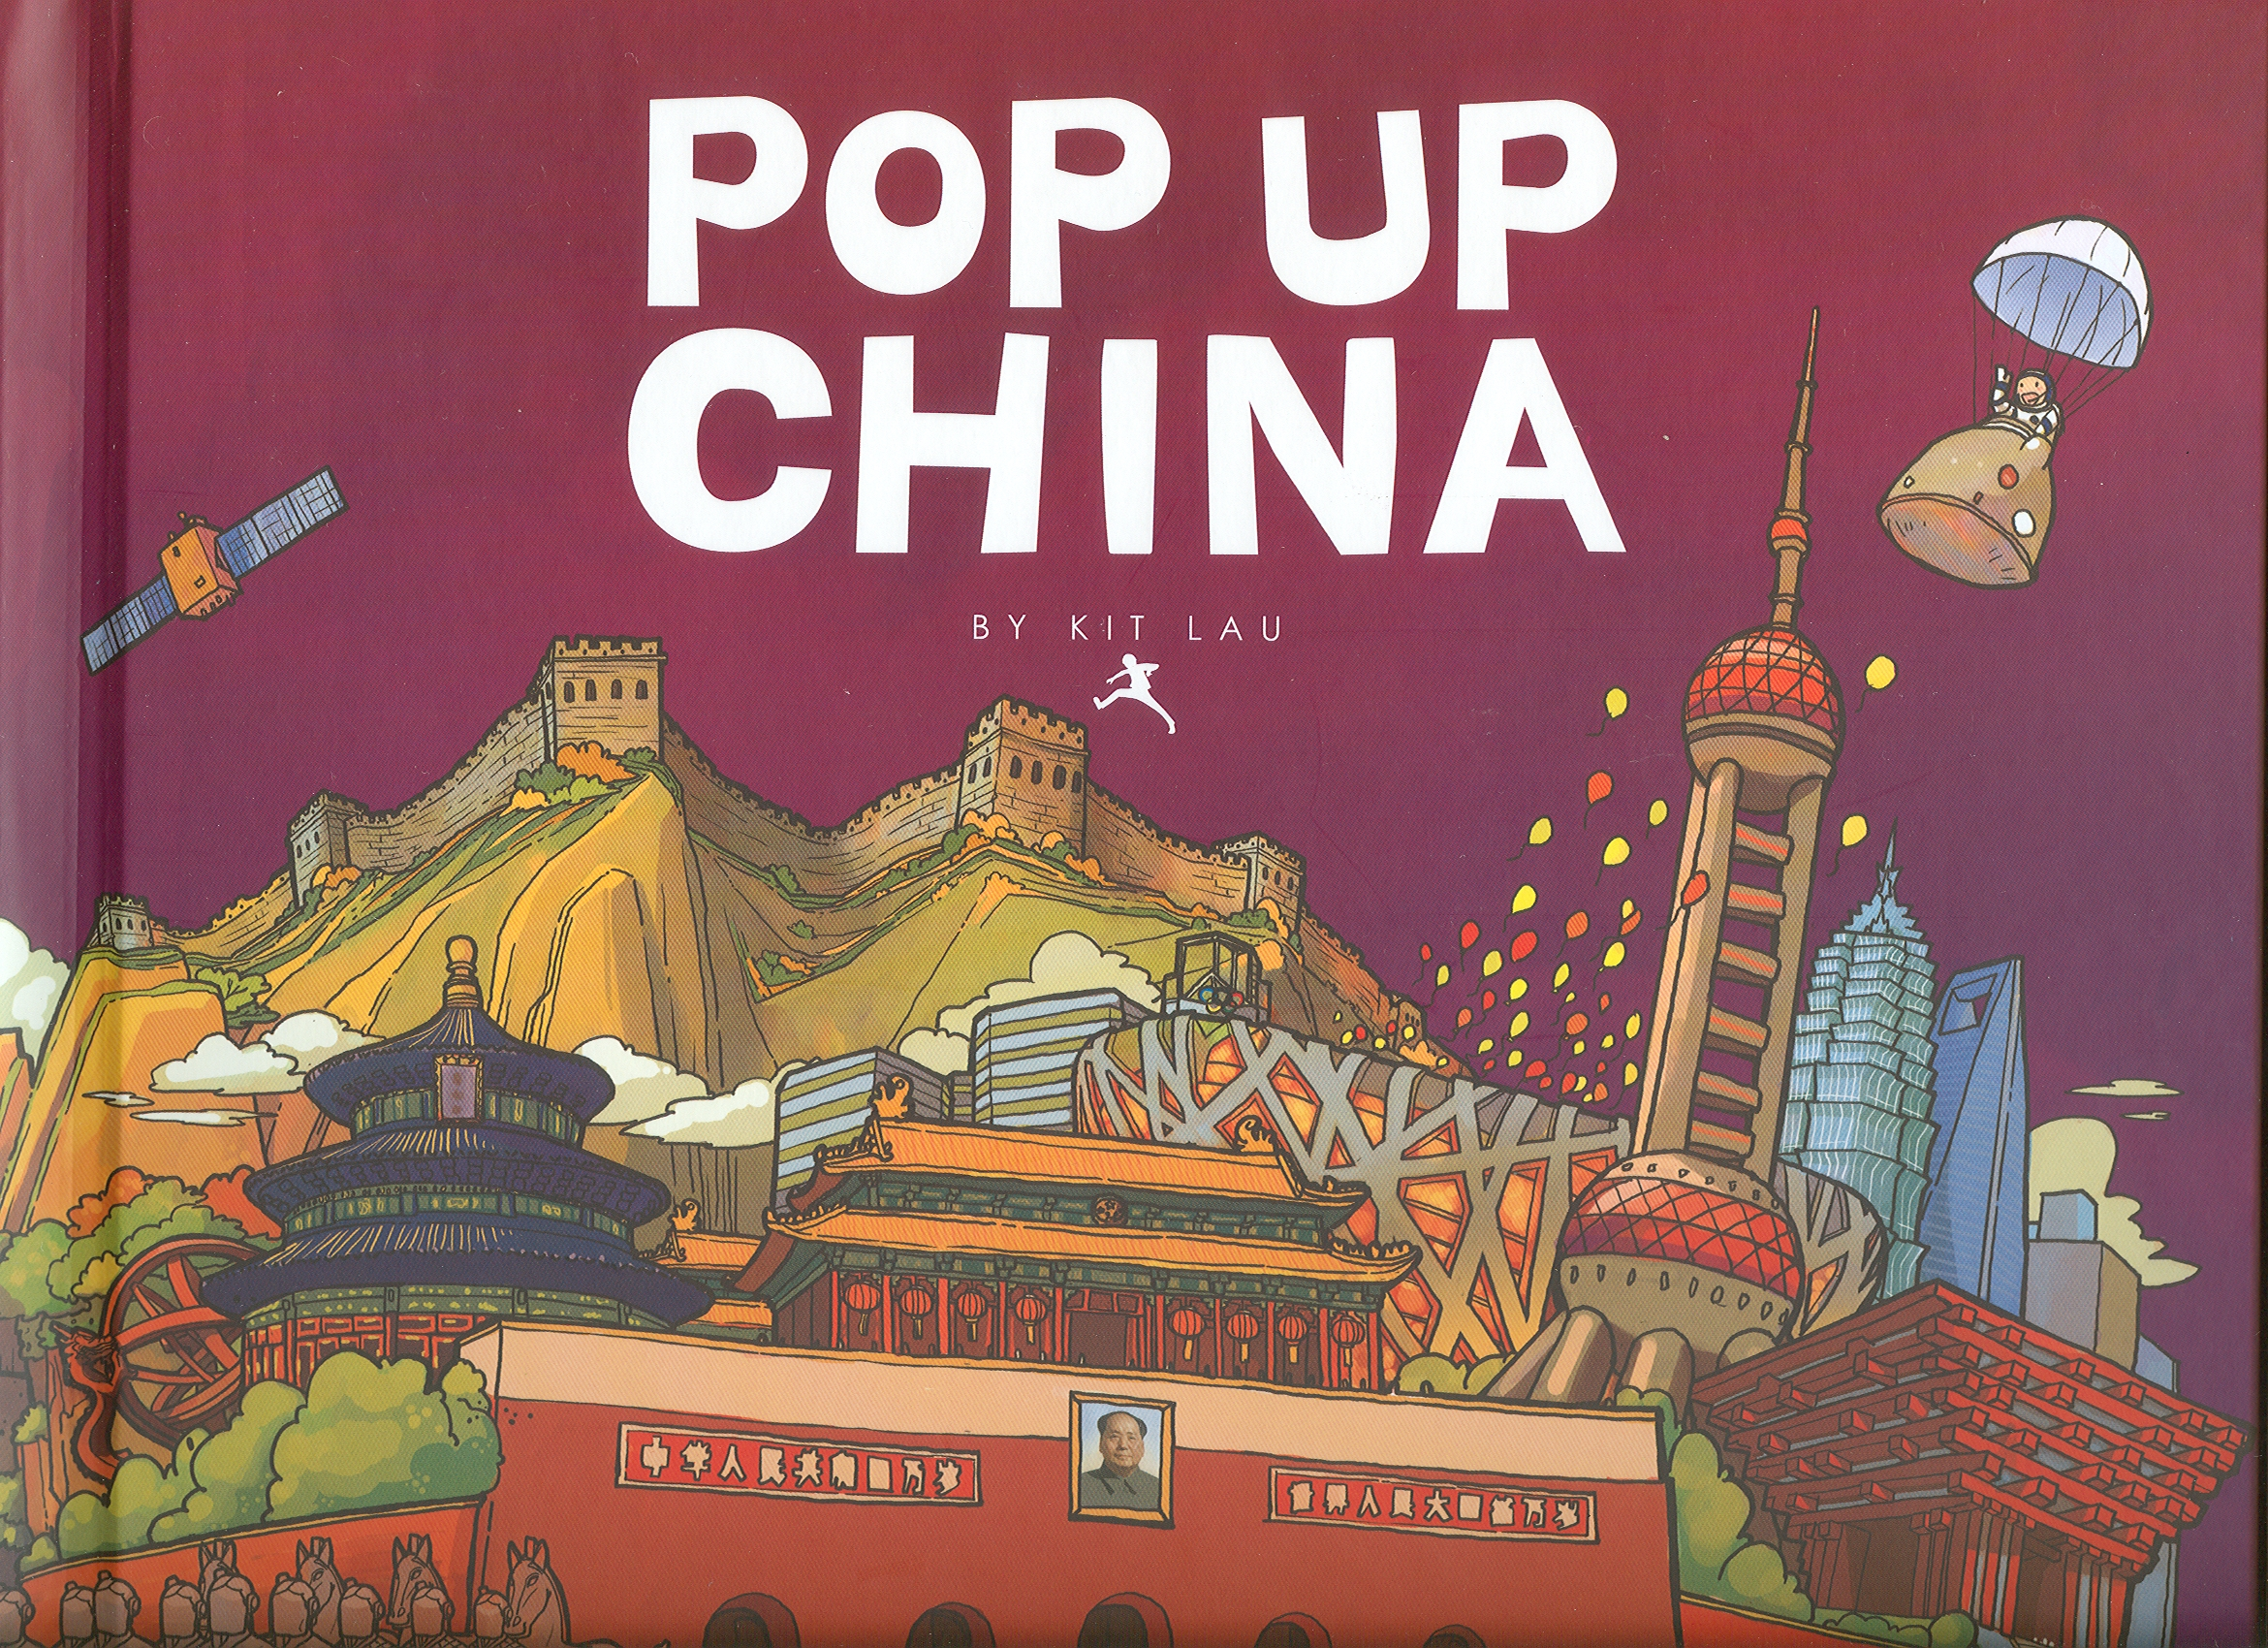 Pop Up China